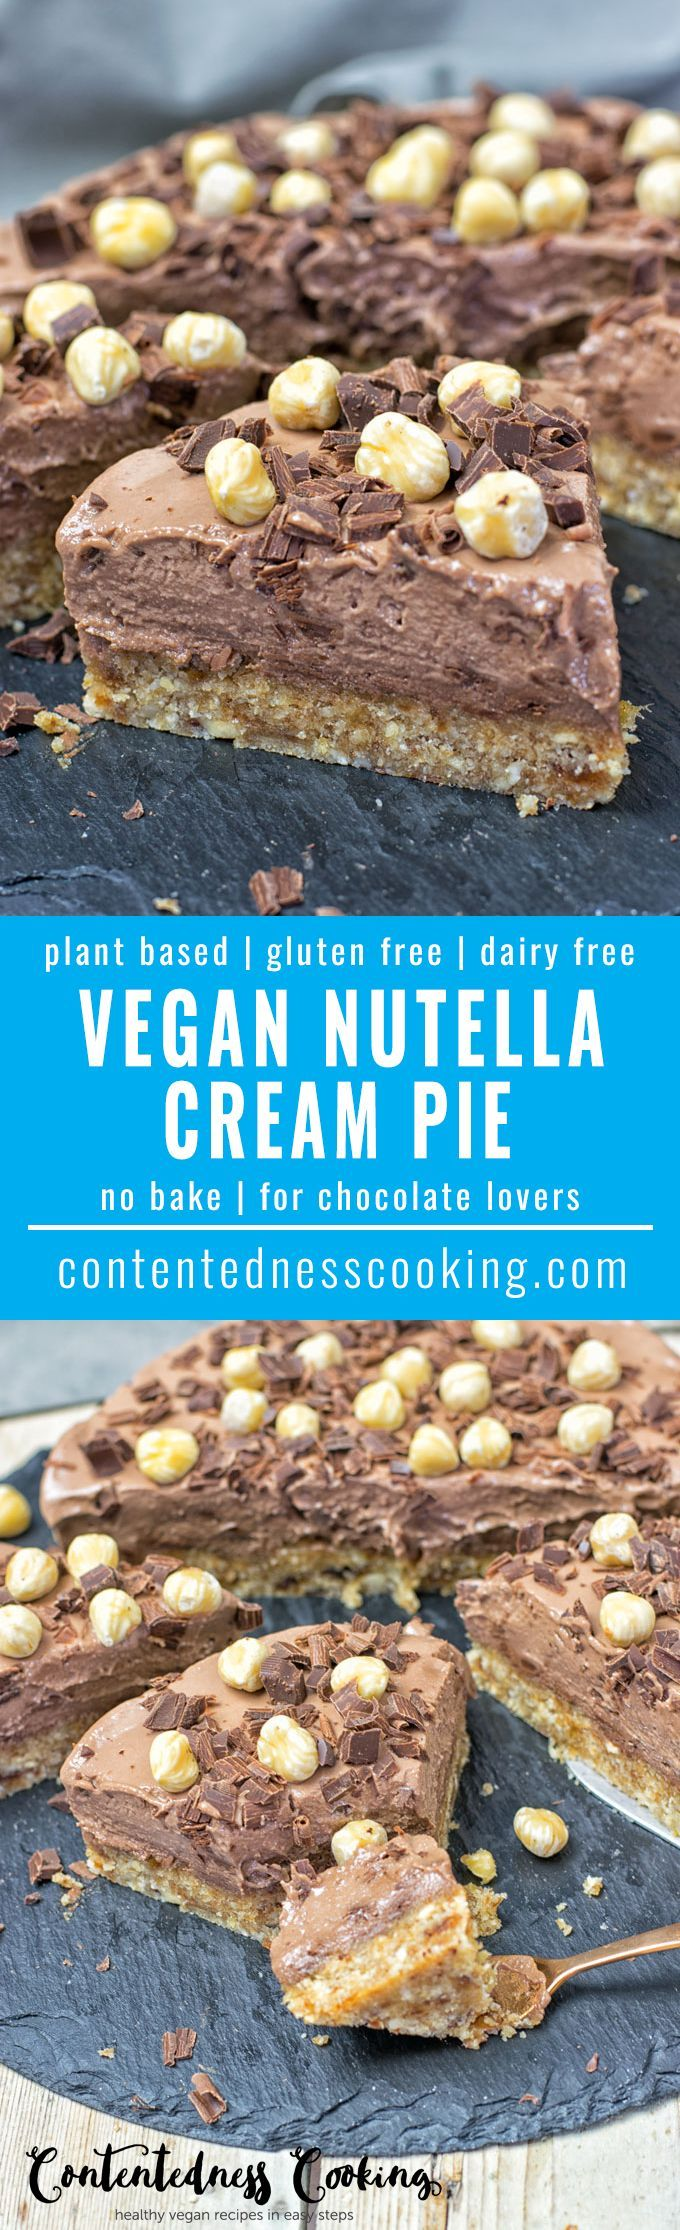 Vegan Nutella Cream Pie | Posted by: DebbieNet.com